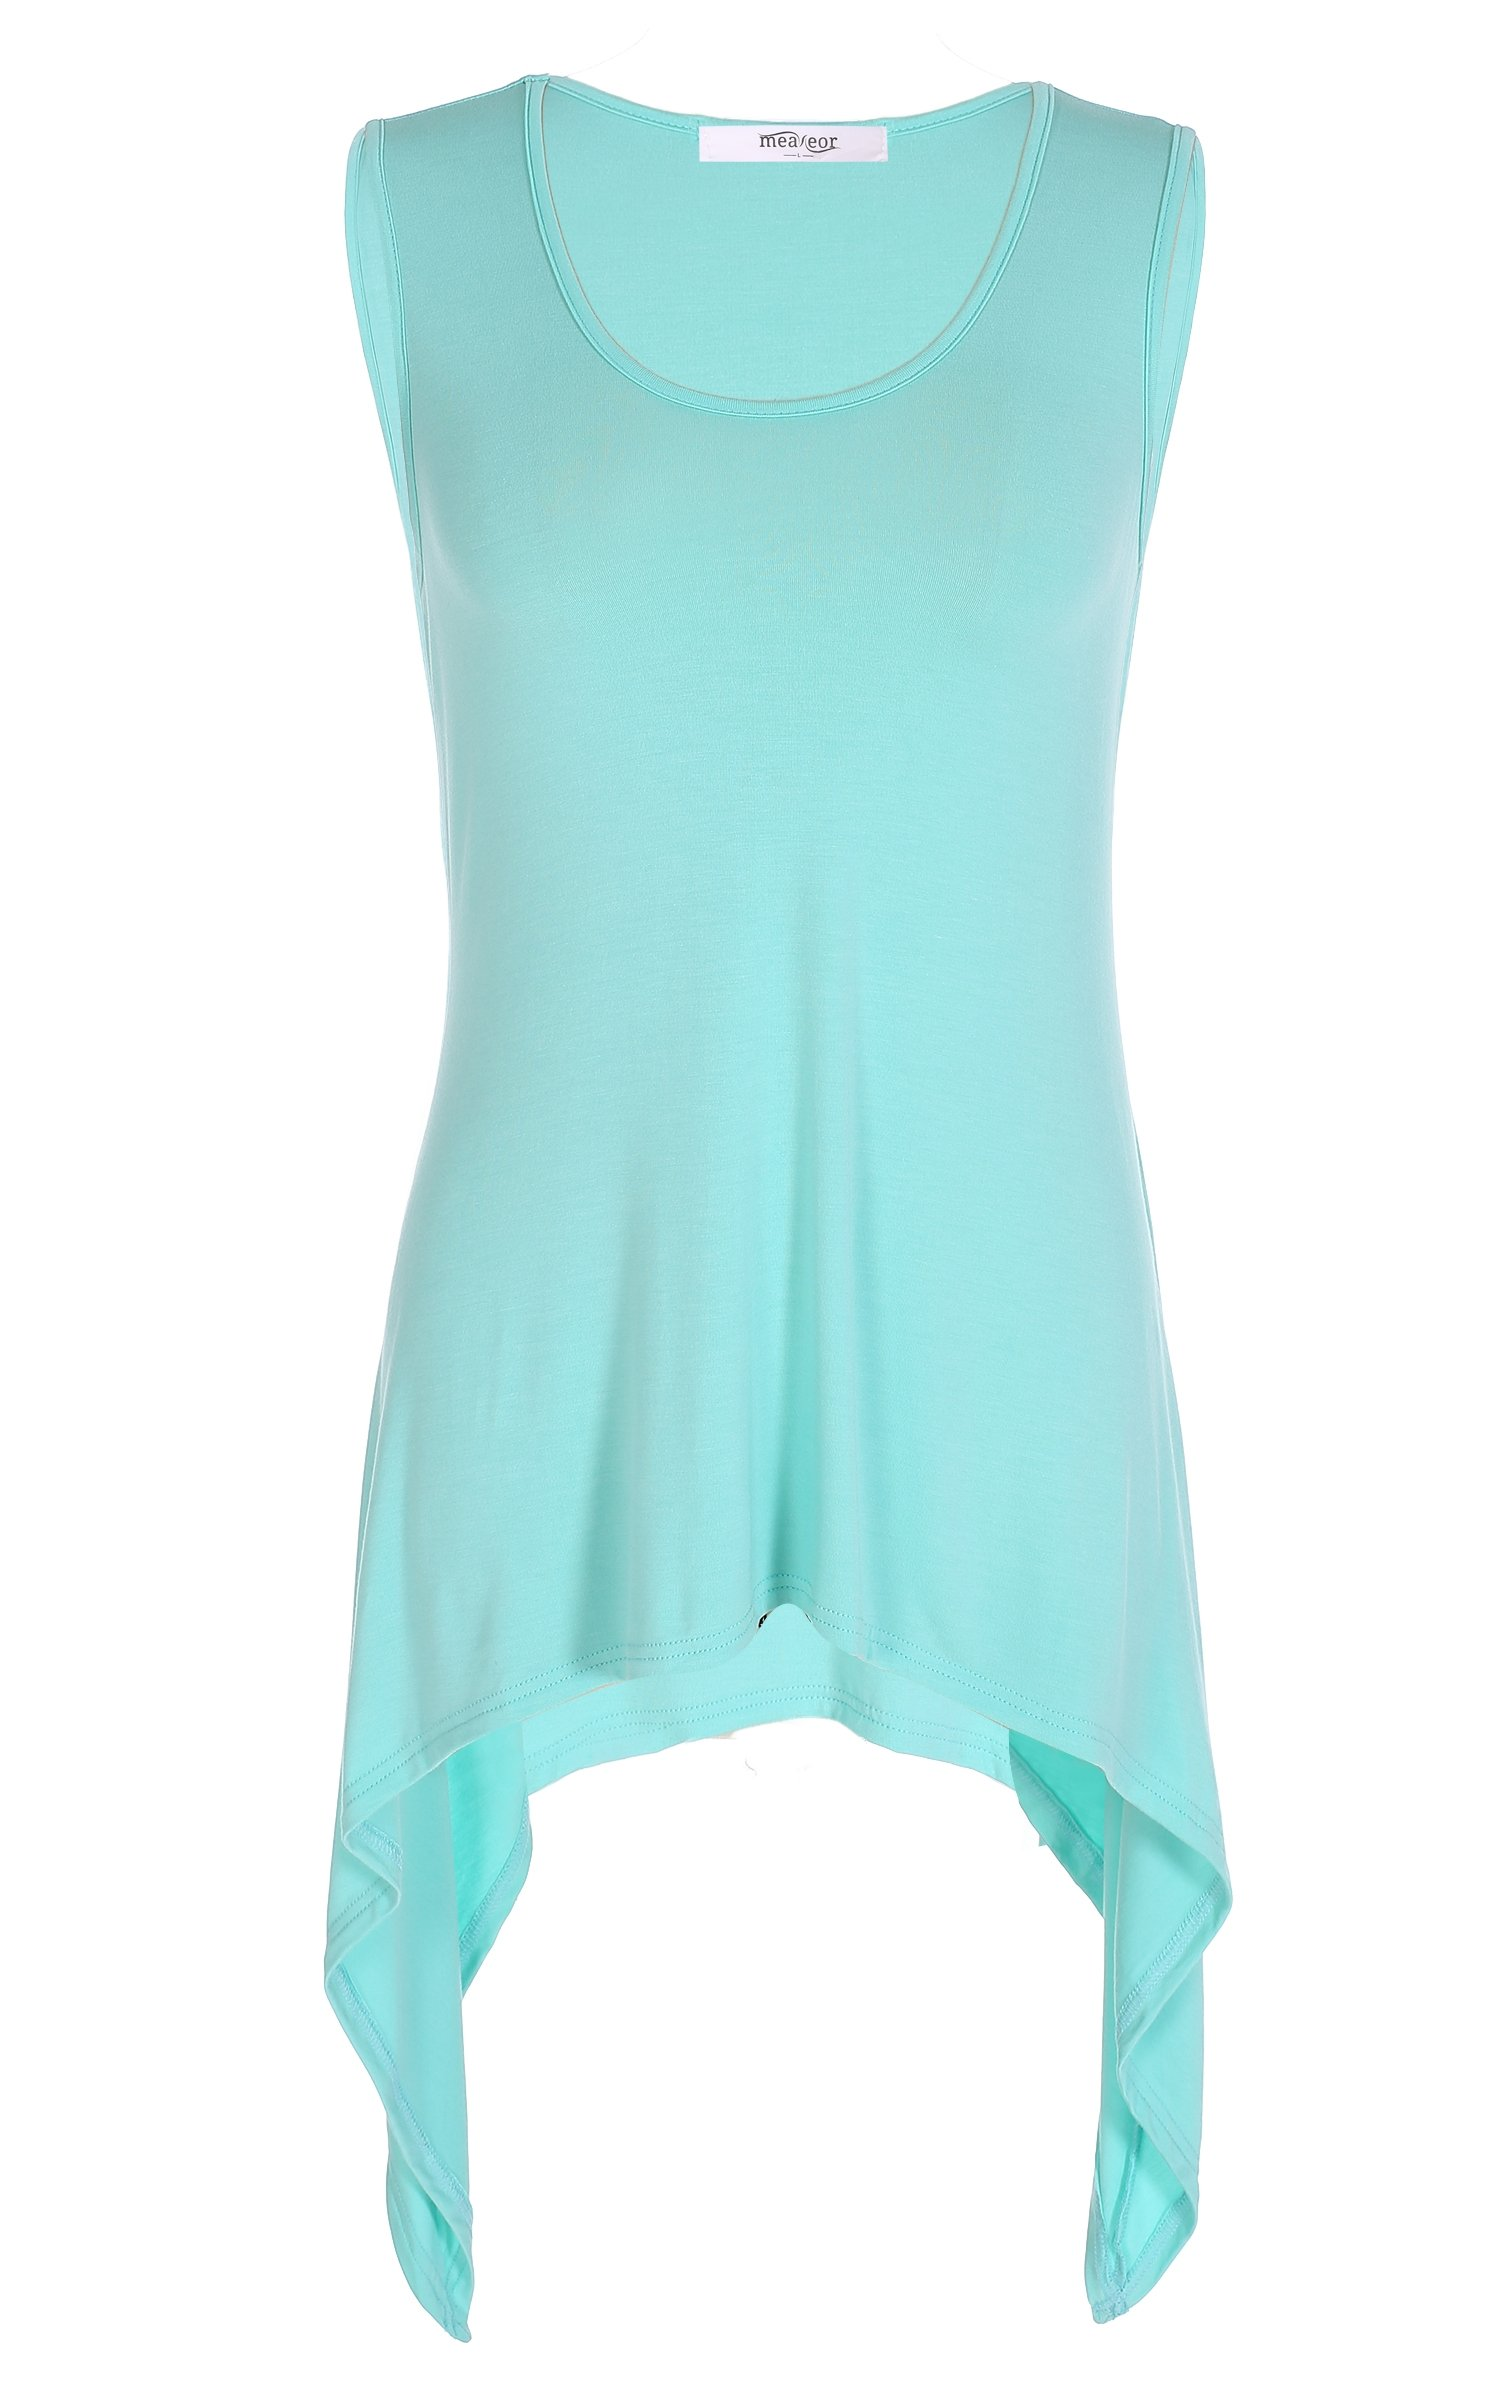 Meaneor Women's Sleeveless Round Neck Solid Basic Tunic Tank Top With Flared Hem Style 2 Green XL